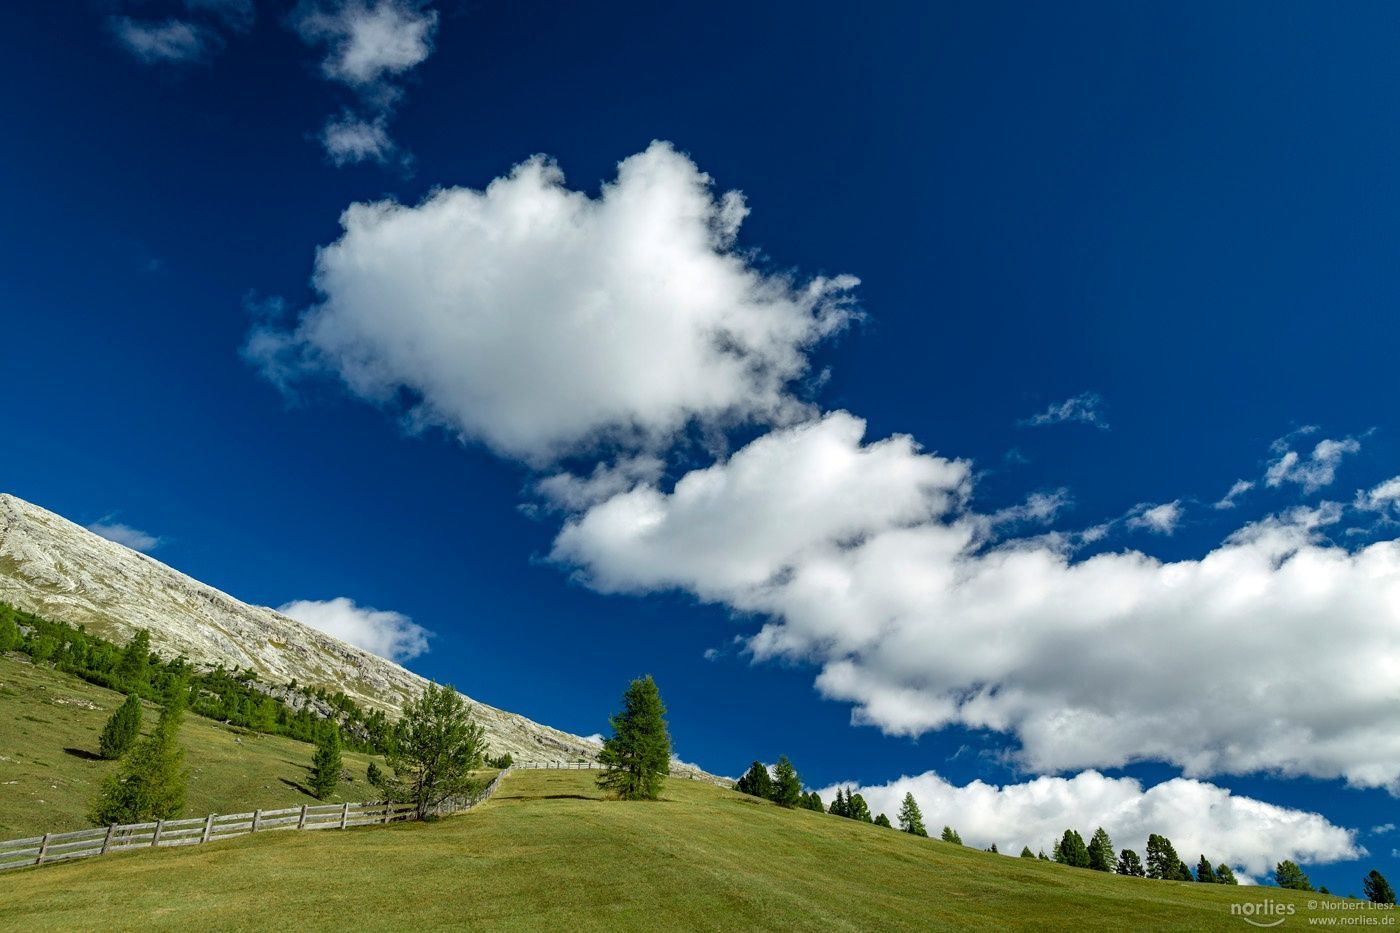 clouds on line  Landscapes photo by norlies http://bit.ly/2cHeOTz